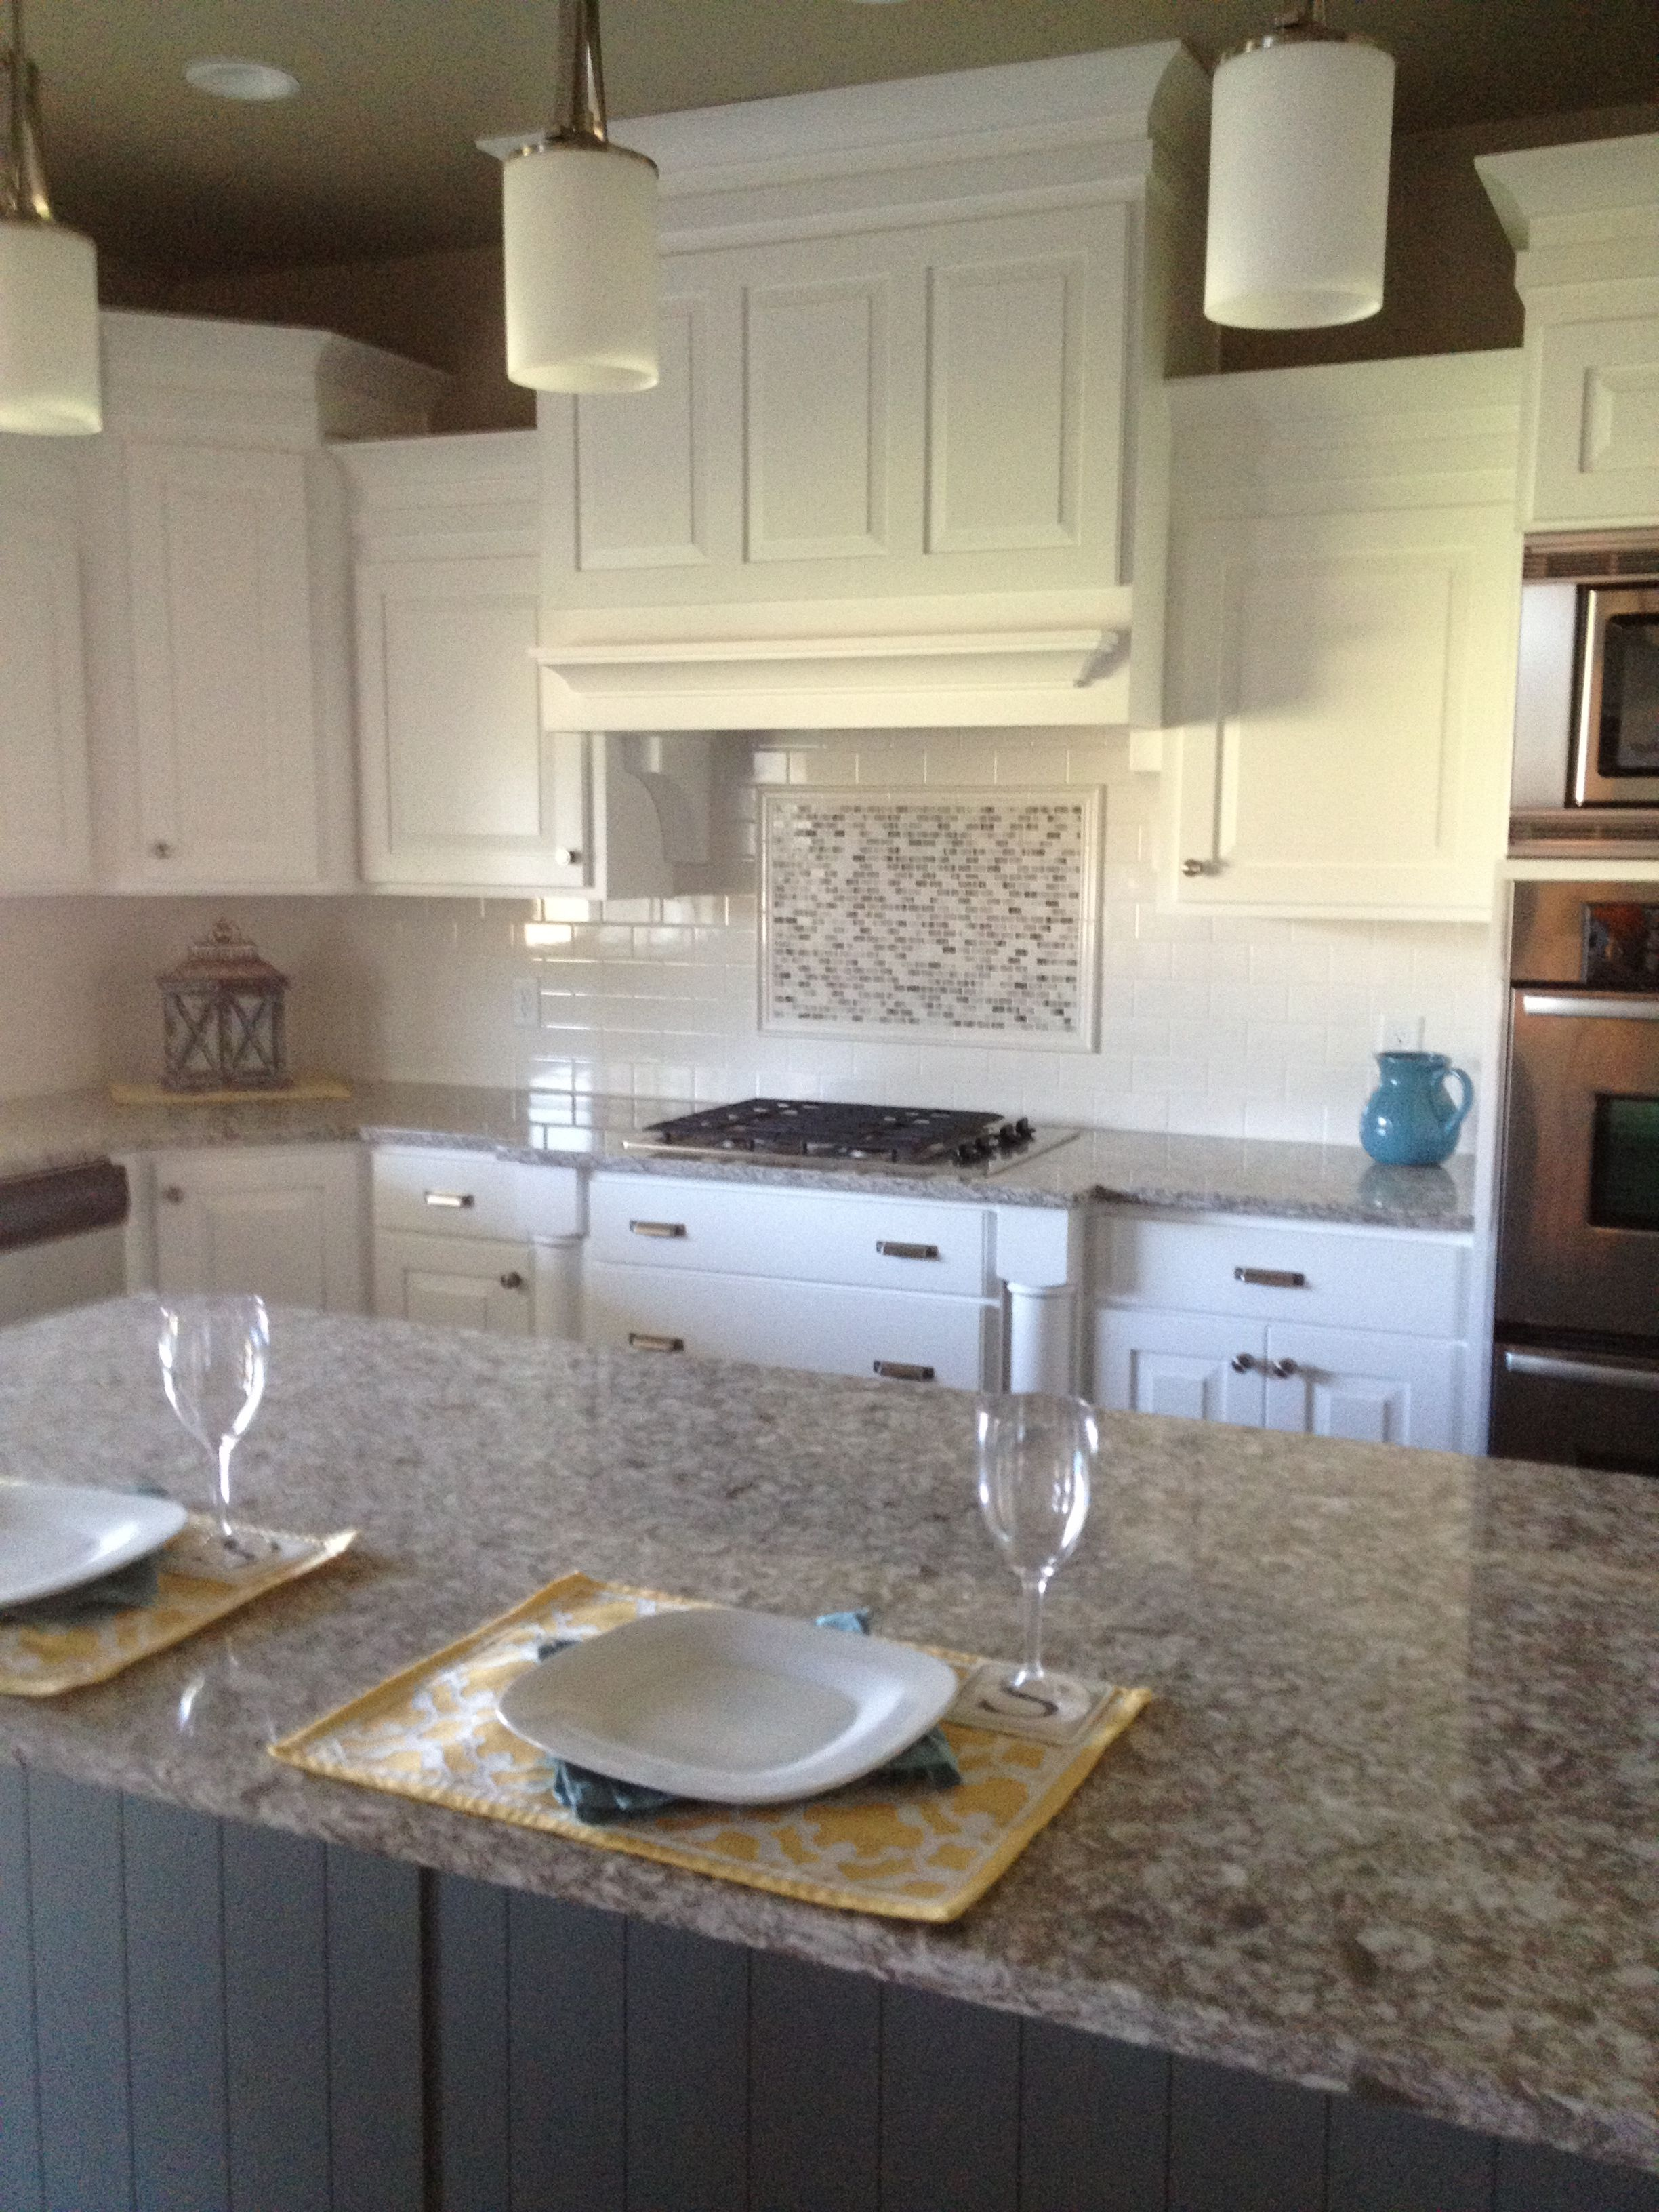 Backsplash Accent Ideas Beautiful Kitchen With White Subway Tiles As A Backsplash